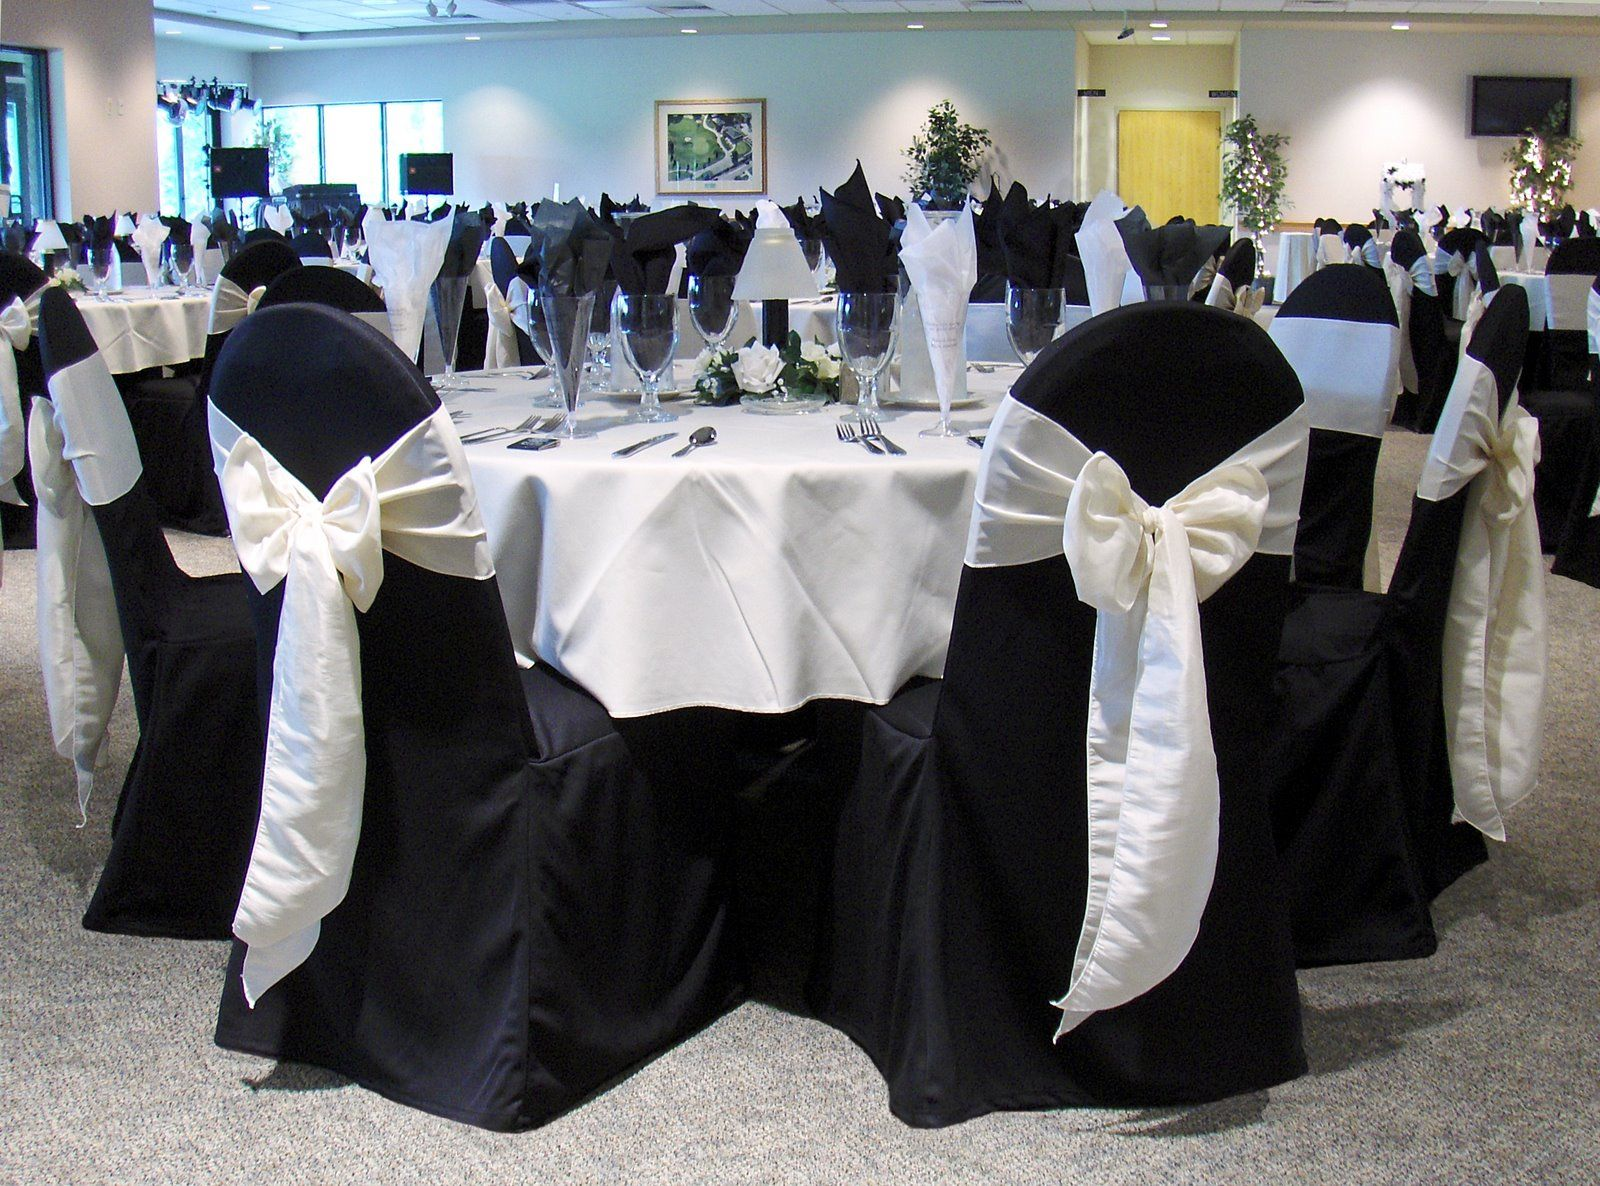 Cheap Wedding Chair Covers >> Cheap Chair Covers Rentals To Enhance Wedding Decoration In 2019